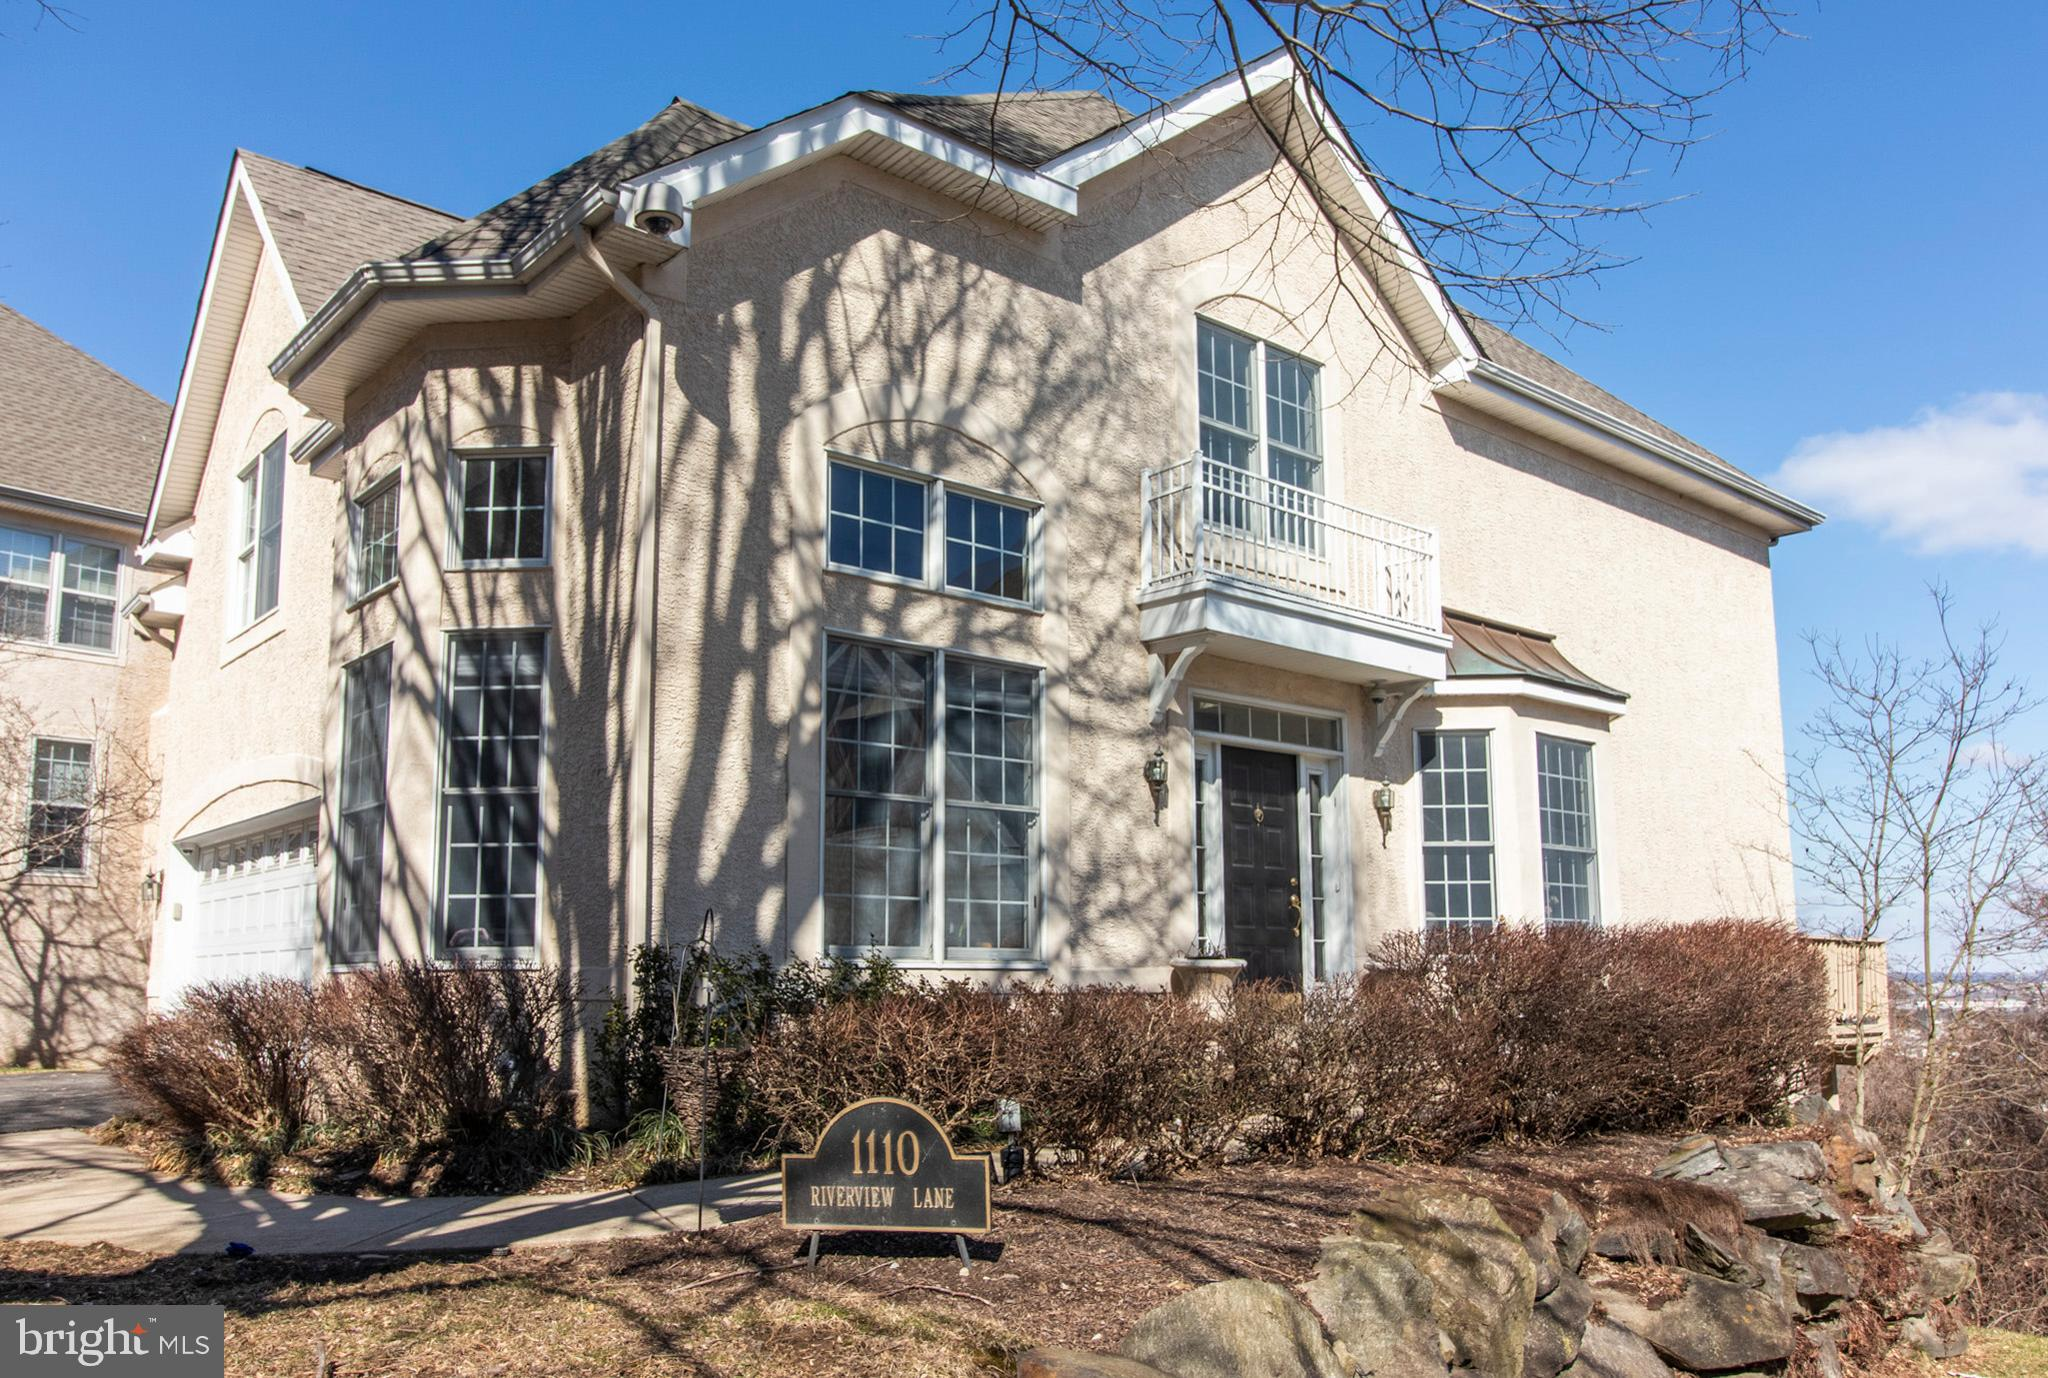 1110 RIVERVIEW LANE, CONSHOHOCKEN, PA 19428